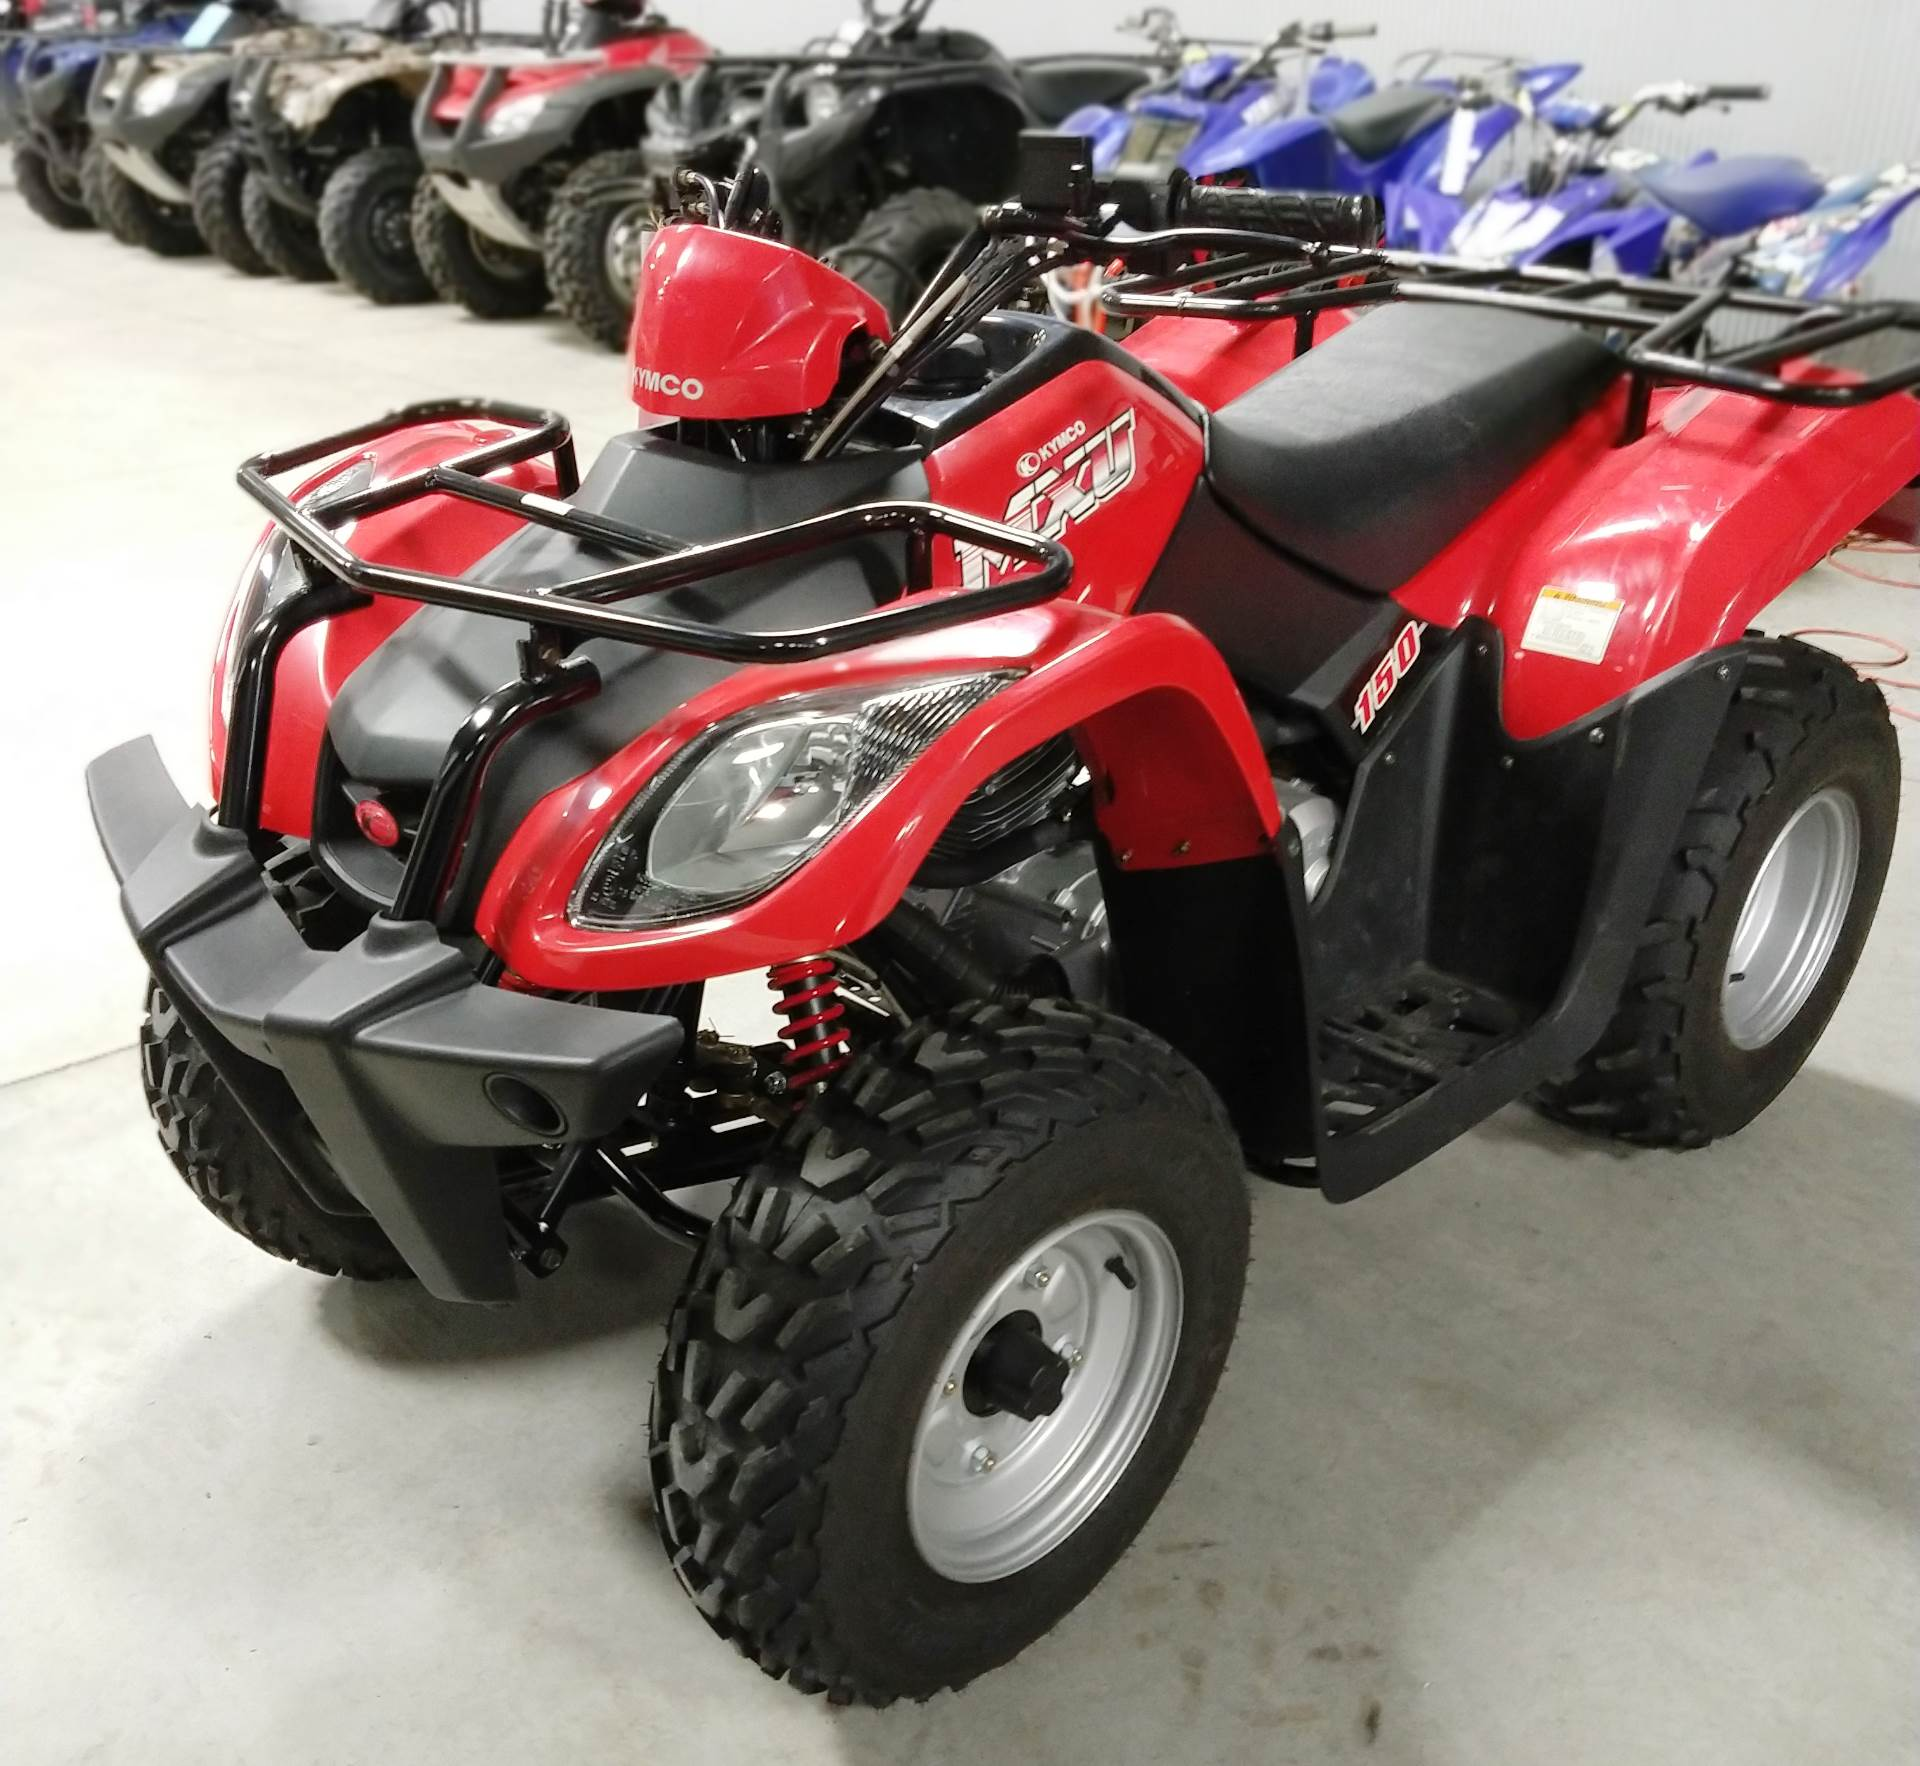 used 2015 kymco mxu 150 atvs in ottumwa ia stock number. Black Bedroom Furniture Sets. Home Design Ideas